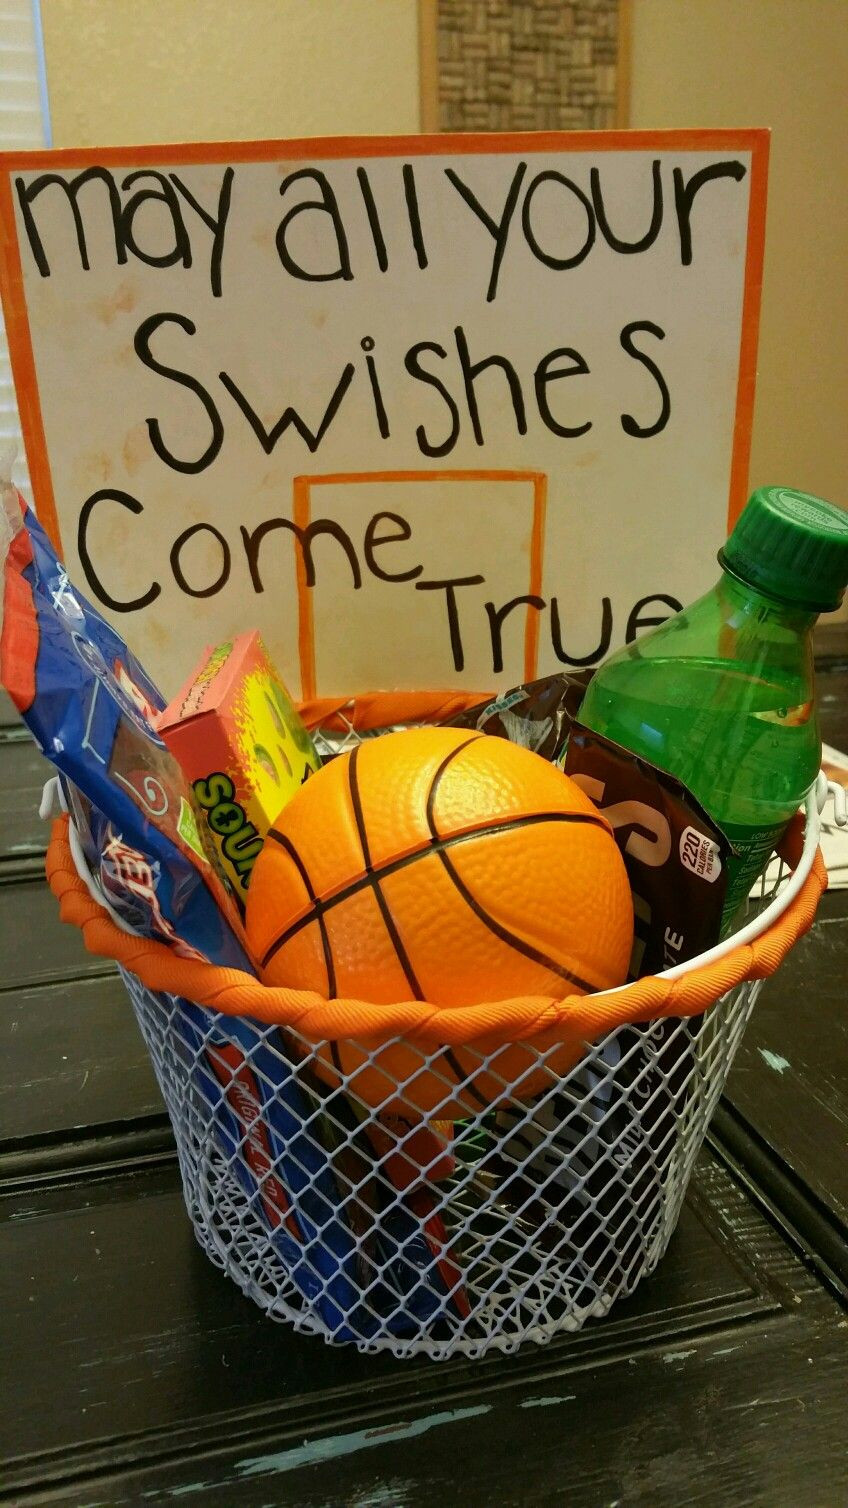 Best ideas about Basketball Gift Ideas . Save or Pin May all your swishes e true Basketball t basket We Now.